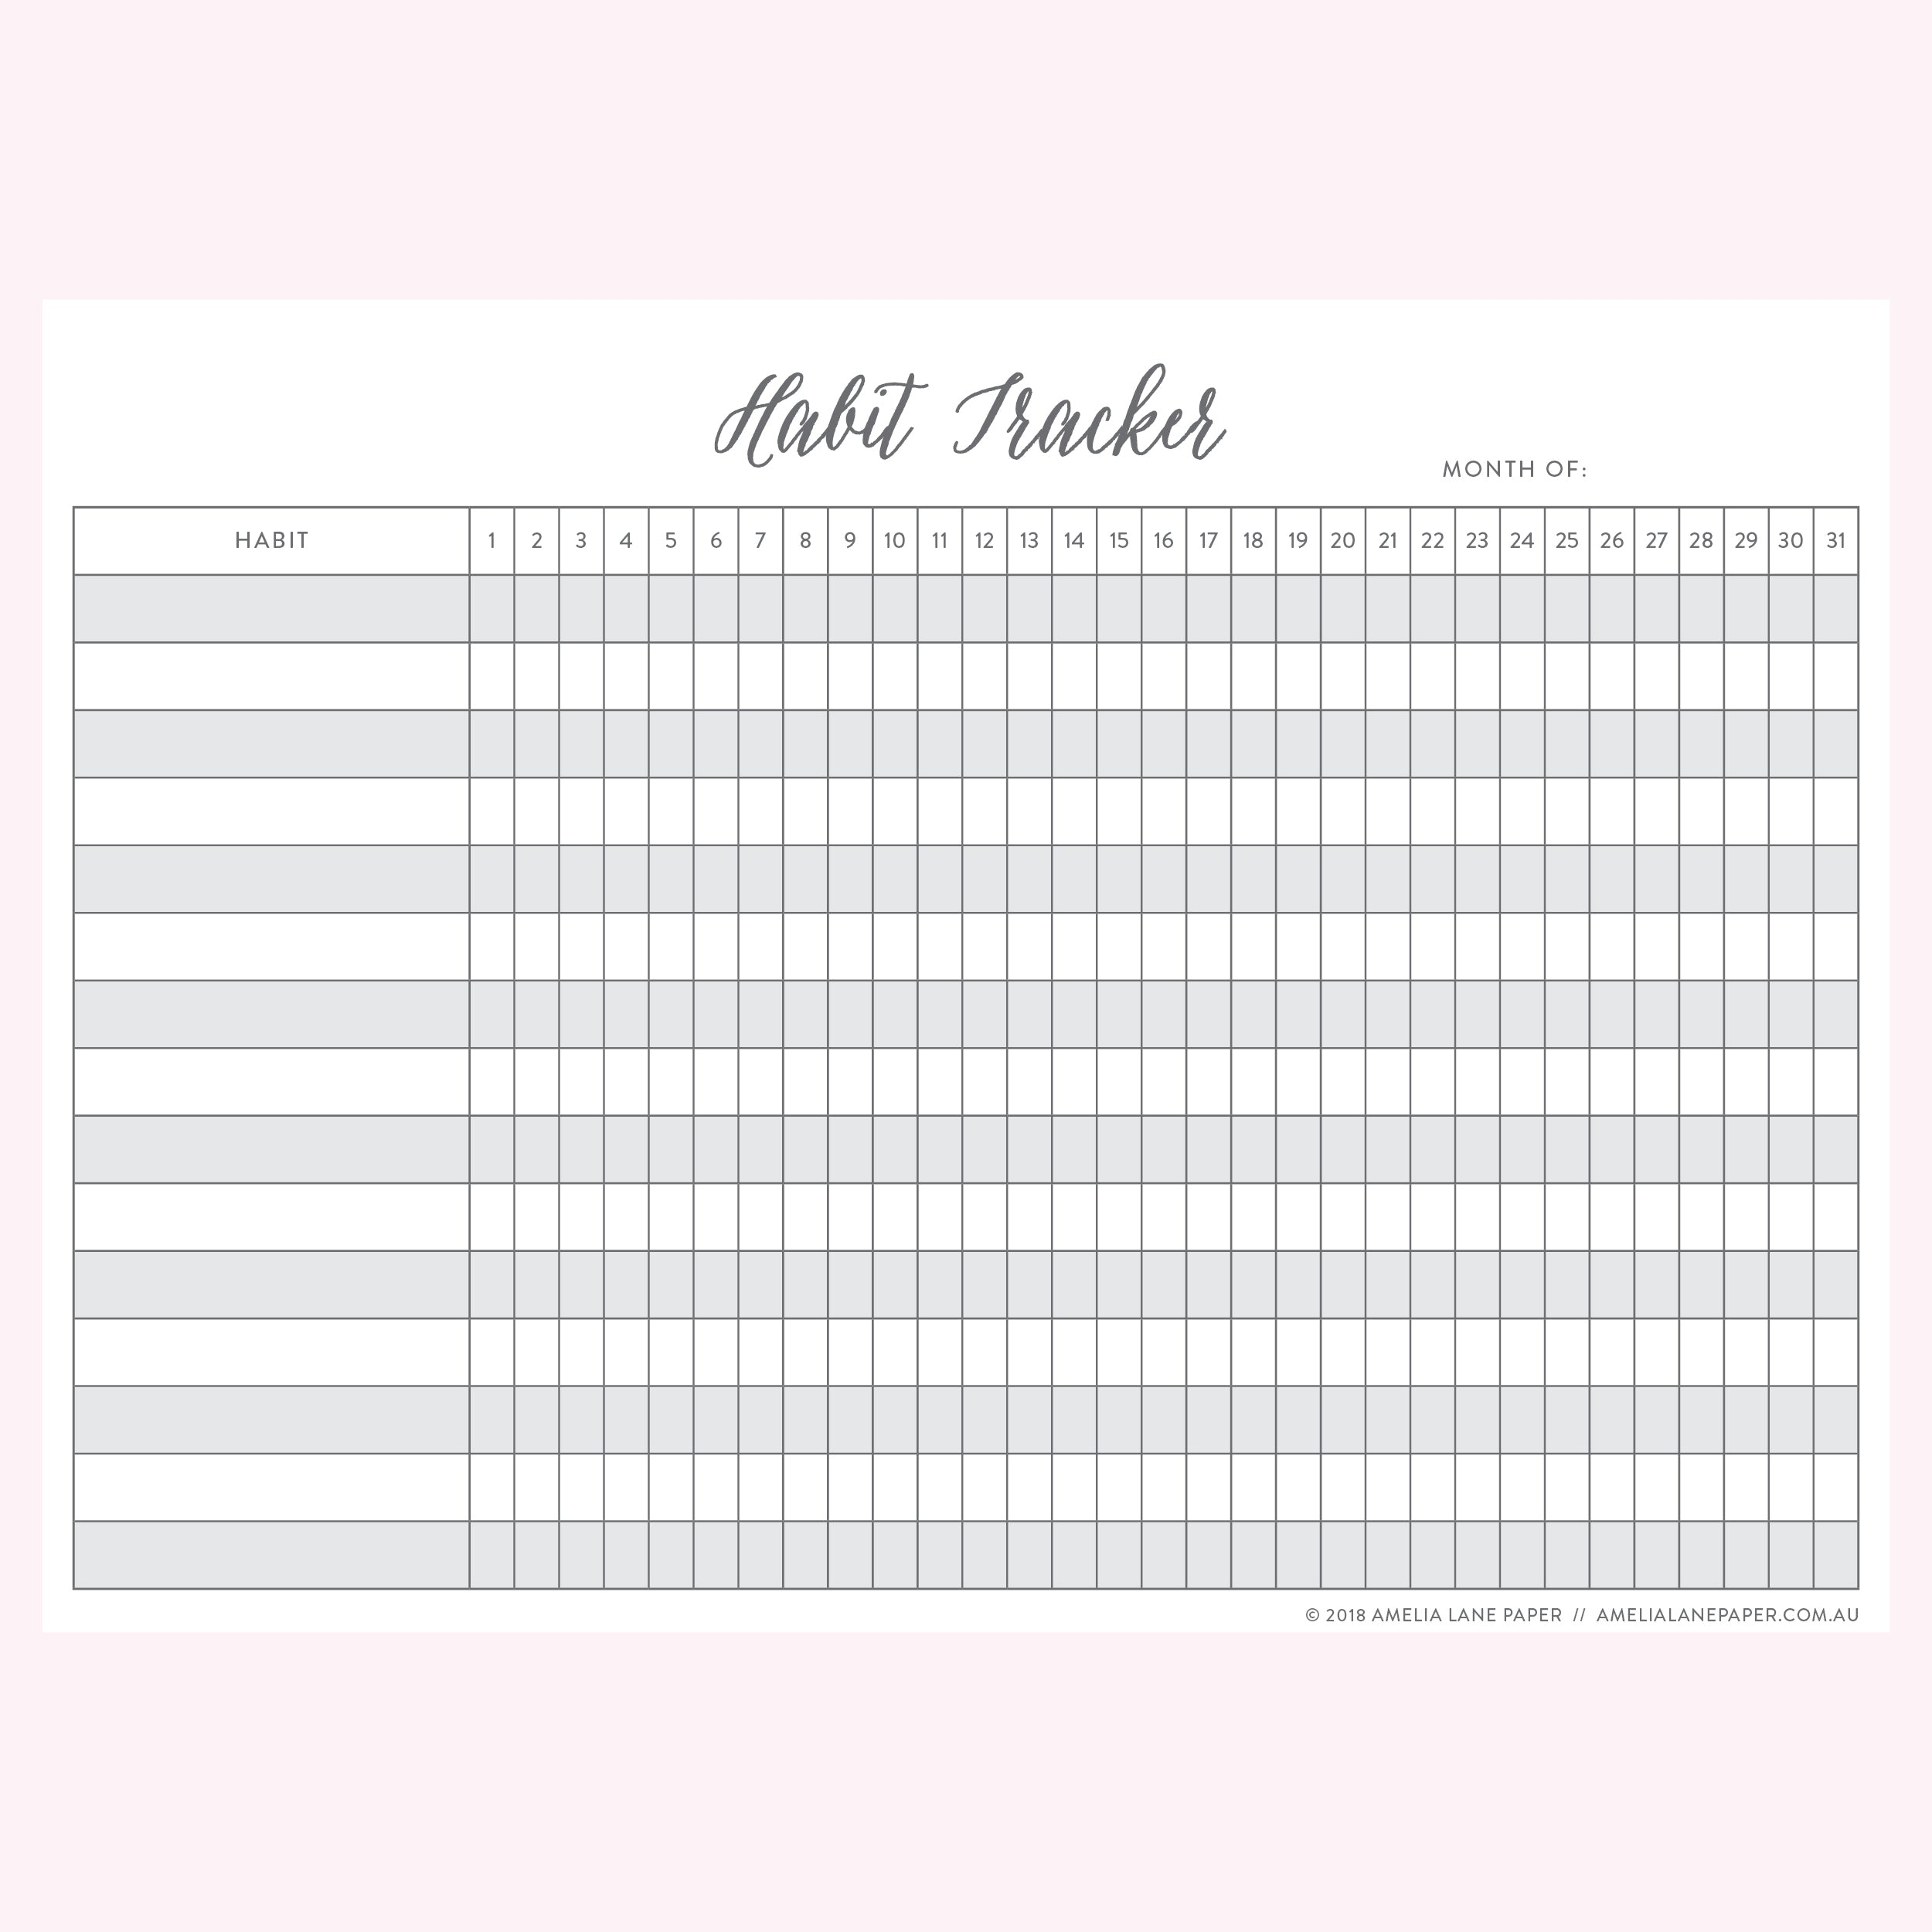 photo regarding Habit Tracker Free Printable identified as Practice Tracker